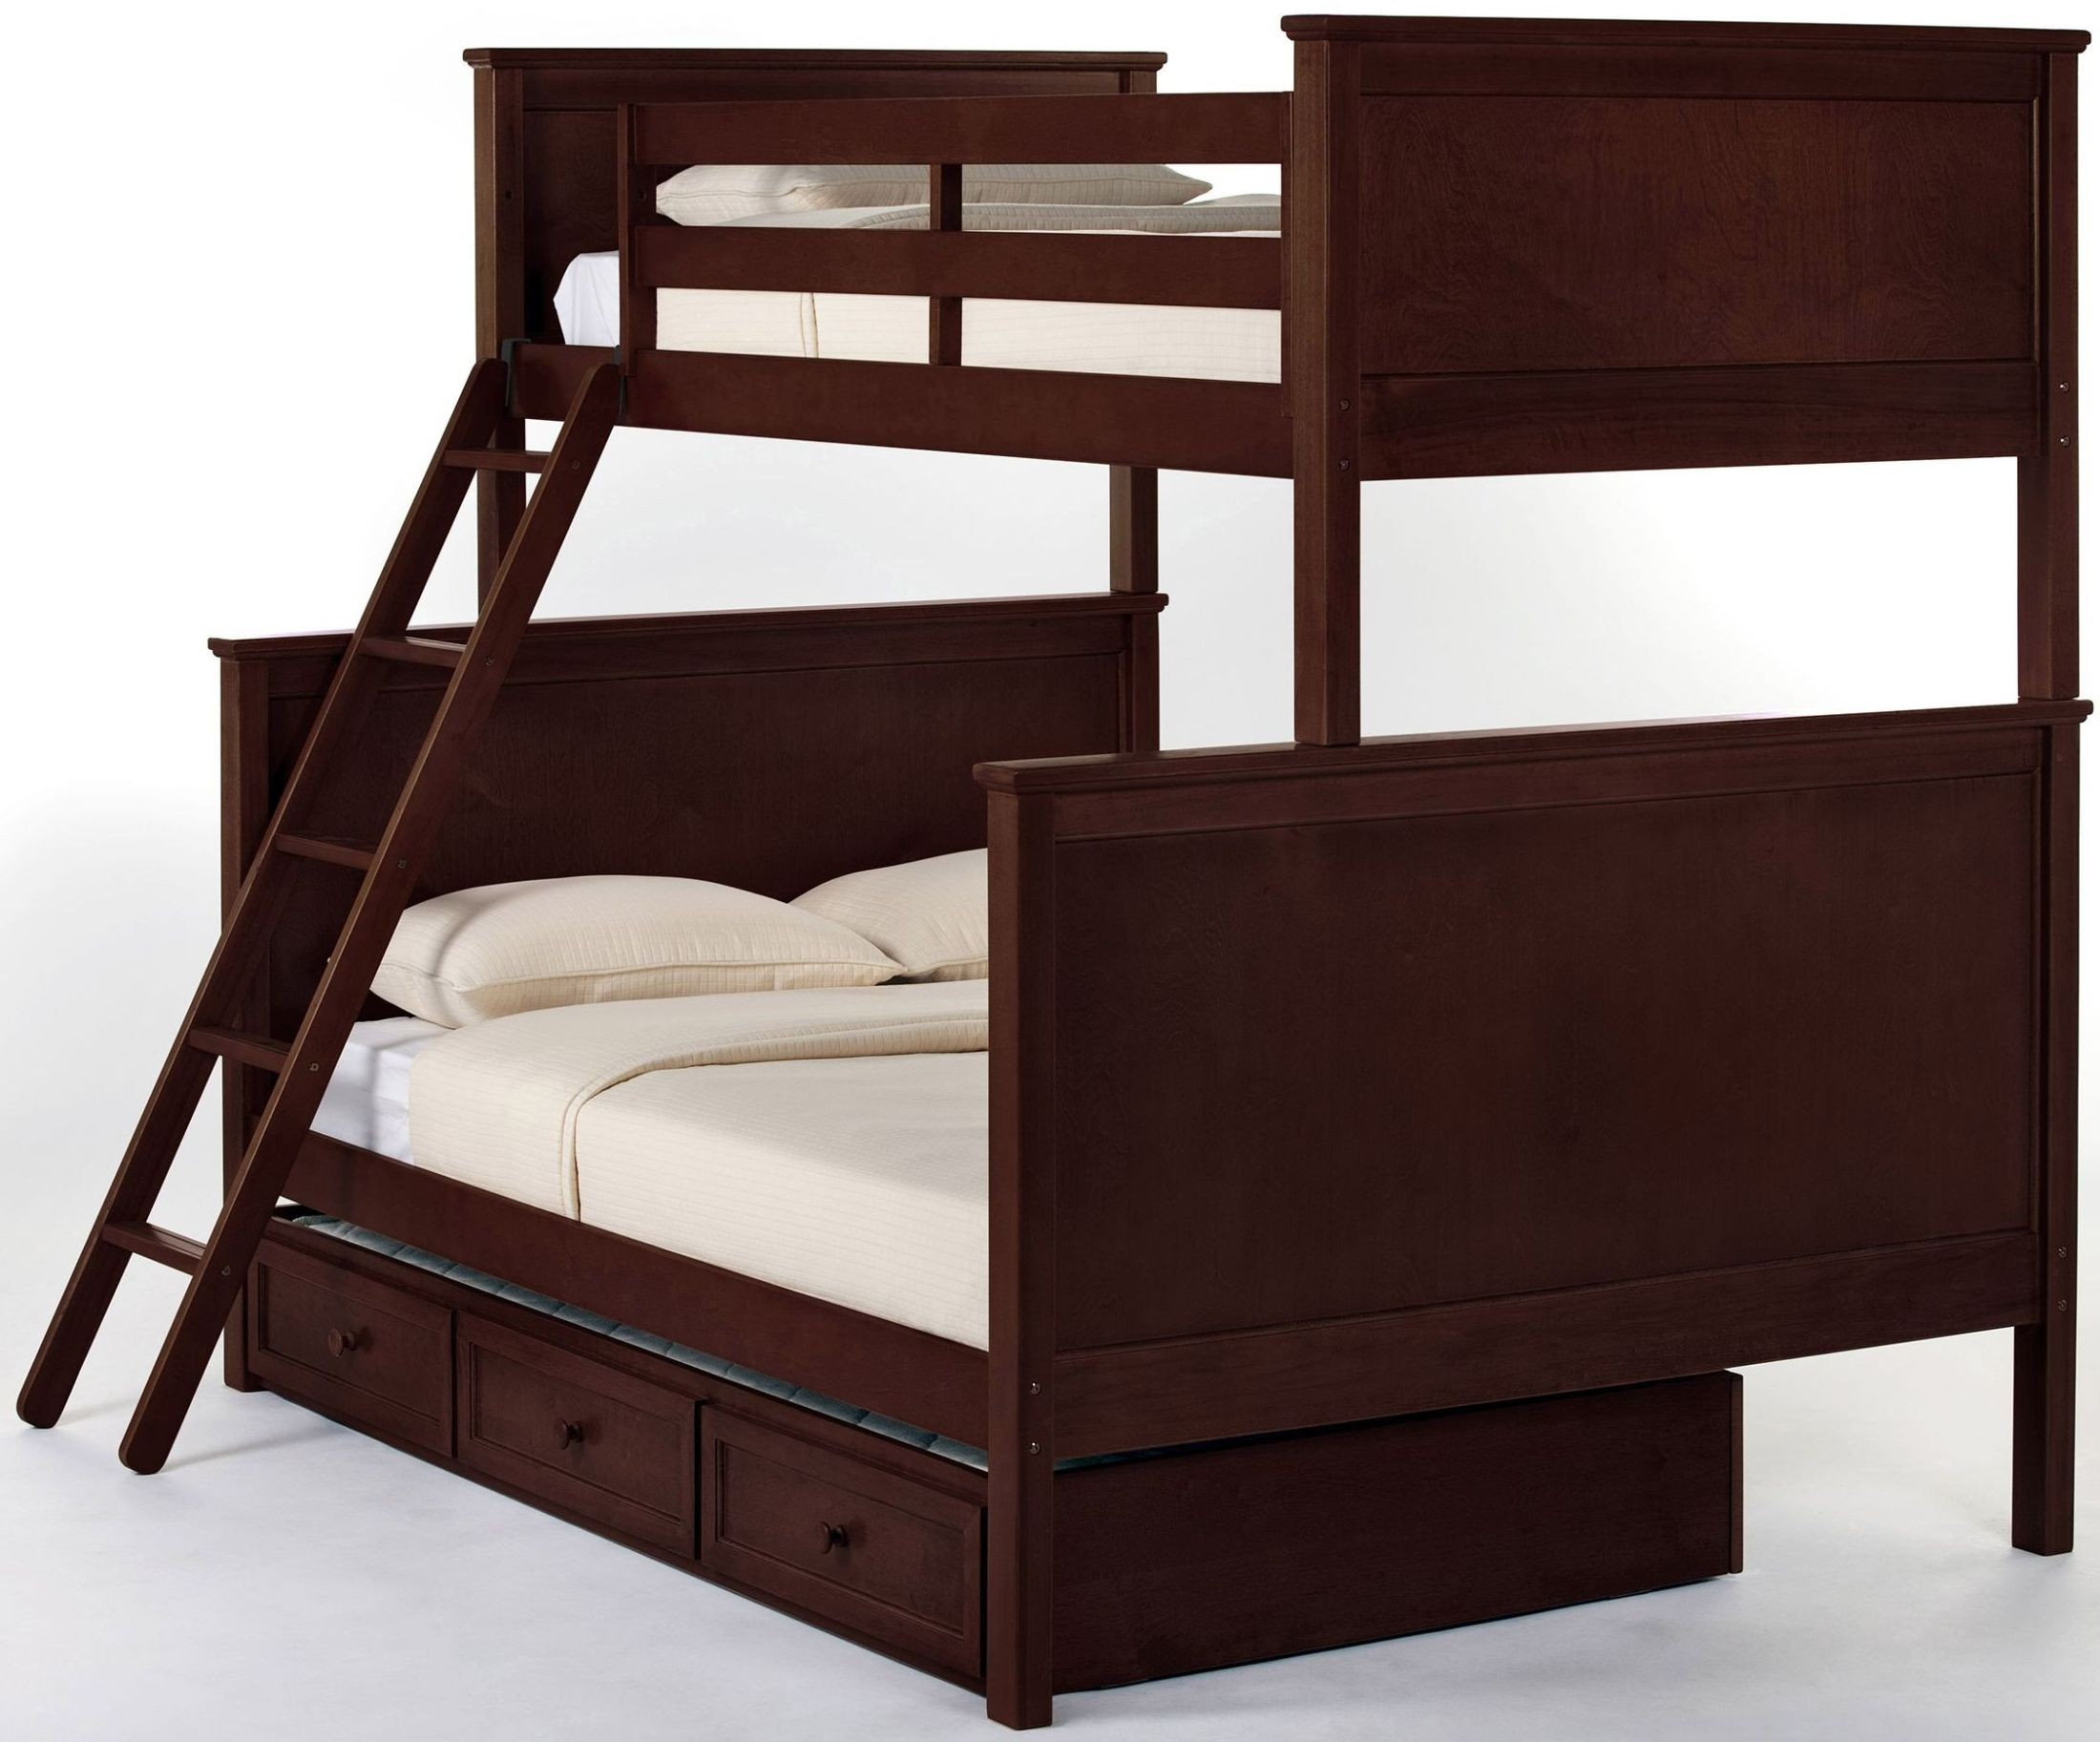 school house cherry twin over full bunk bed with trundle from ne kids coleman furniture. Black Bedroom Furniture Sets. Home Design Ideas